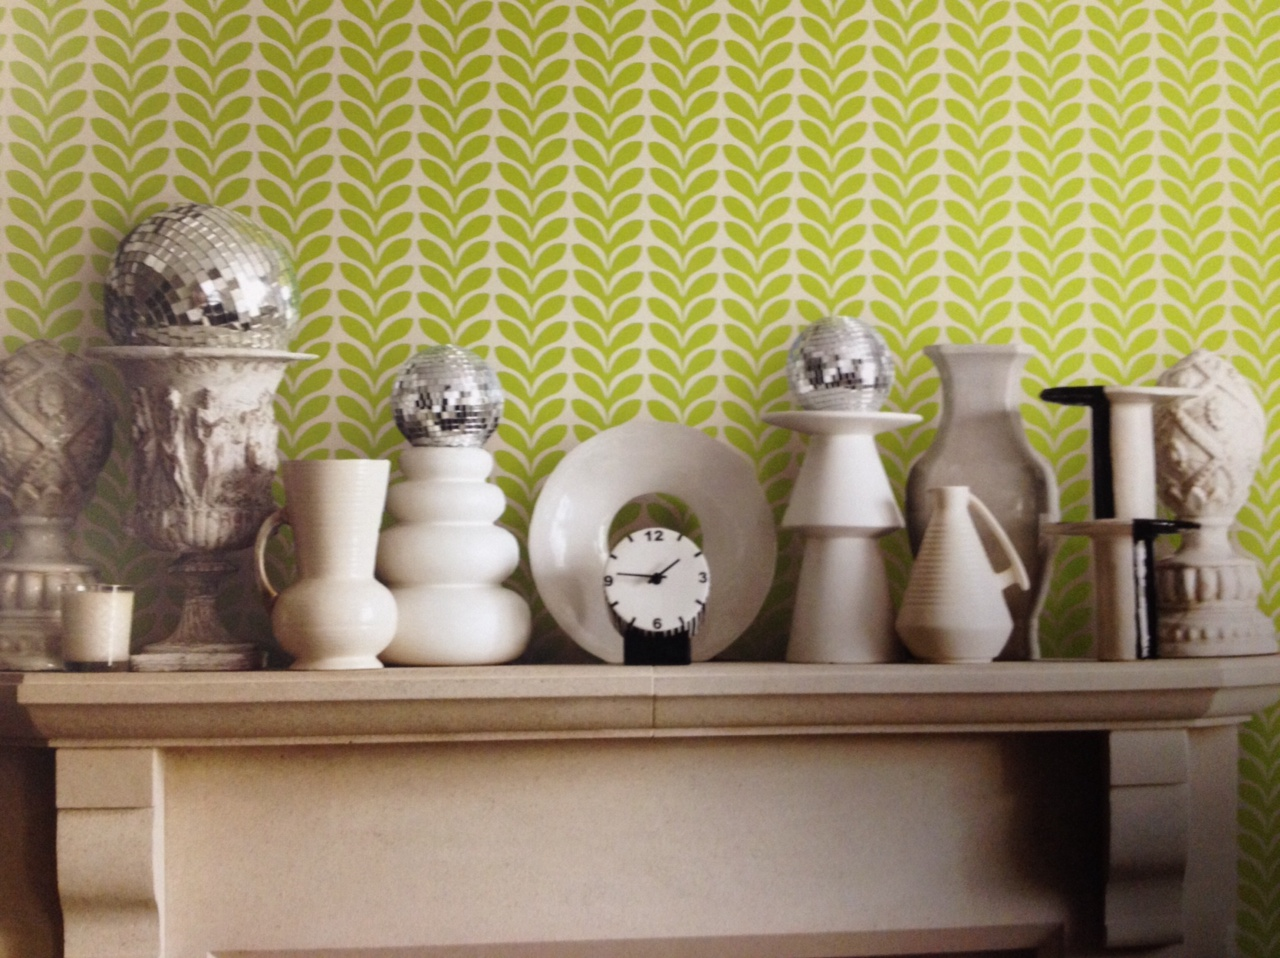 Environmentally-friendly-Bright-lime-and-green-brings-updated-s-influence-Find-it-at-wallpaper-wp5007152